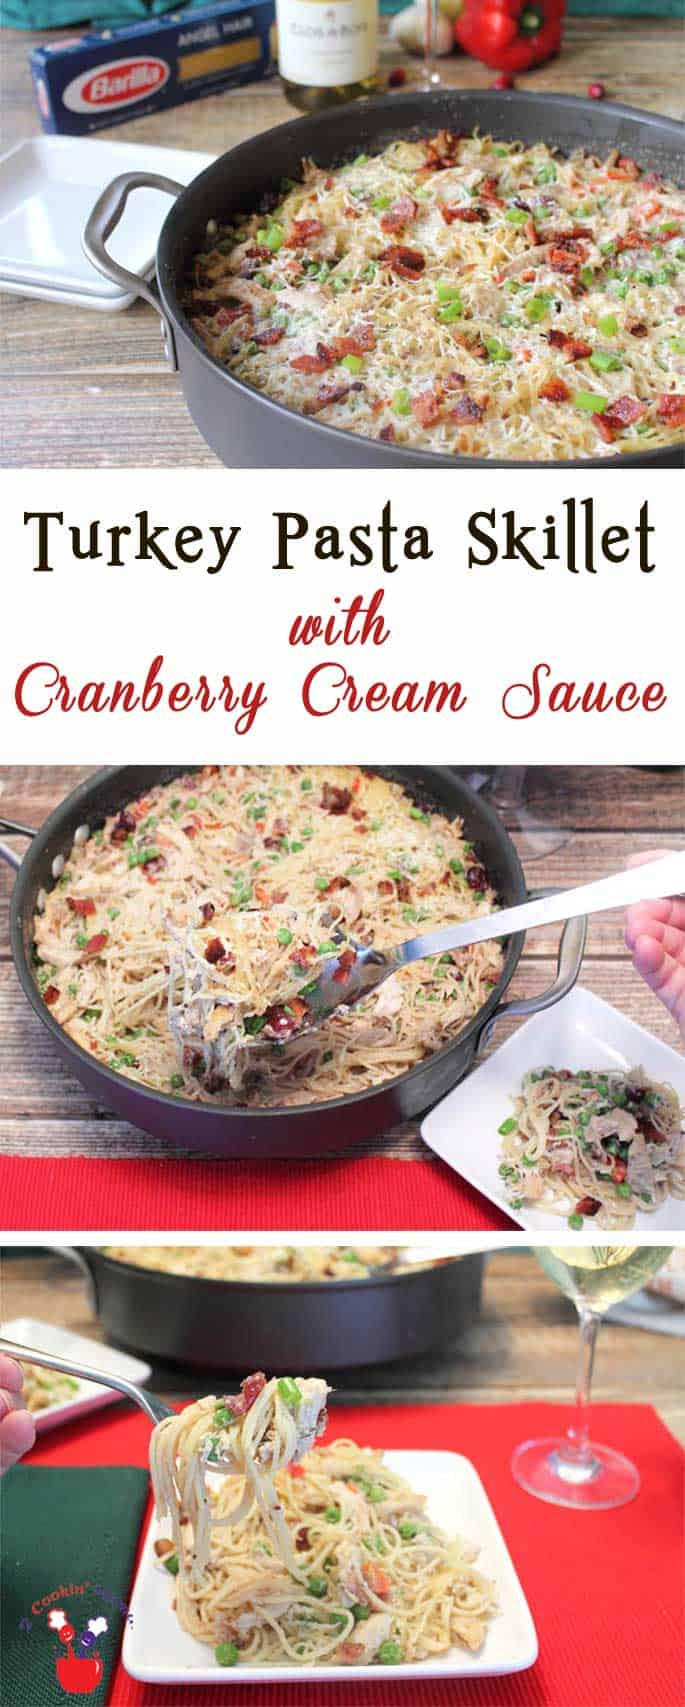 Turkey Pasta Skillet with Cranberry Cream Sauce is rich, creamy & so easy to make. Great use for holiday leftovers & delicious enough to serve for company. #thetalkofthetable #ad